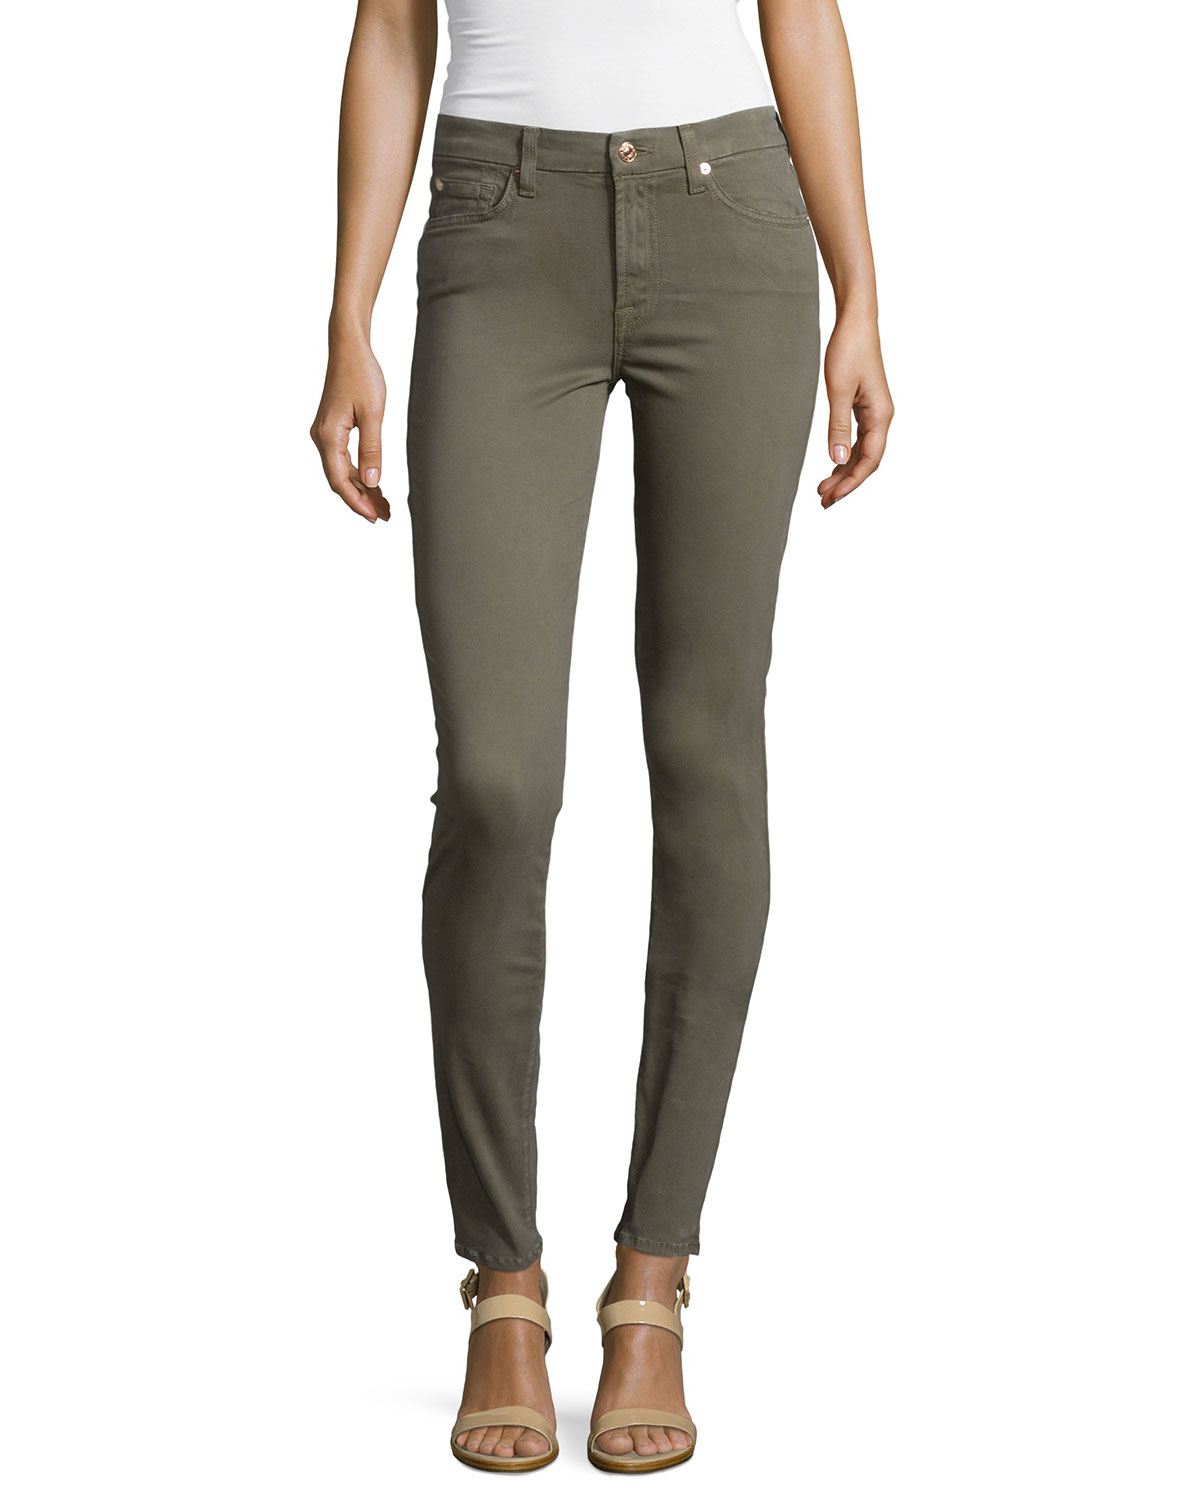 7 for all mankind mid rise skinny jeans in gray lyst. Black Bedroom Furniture Sets. Home Design Ideas